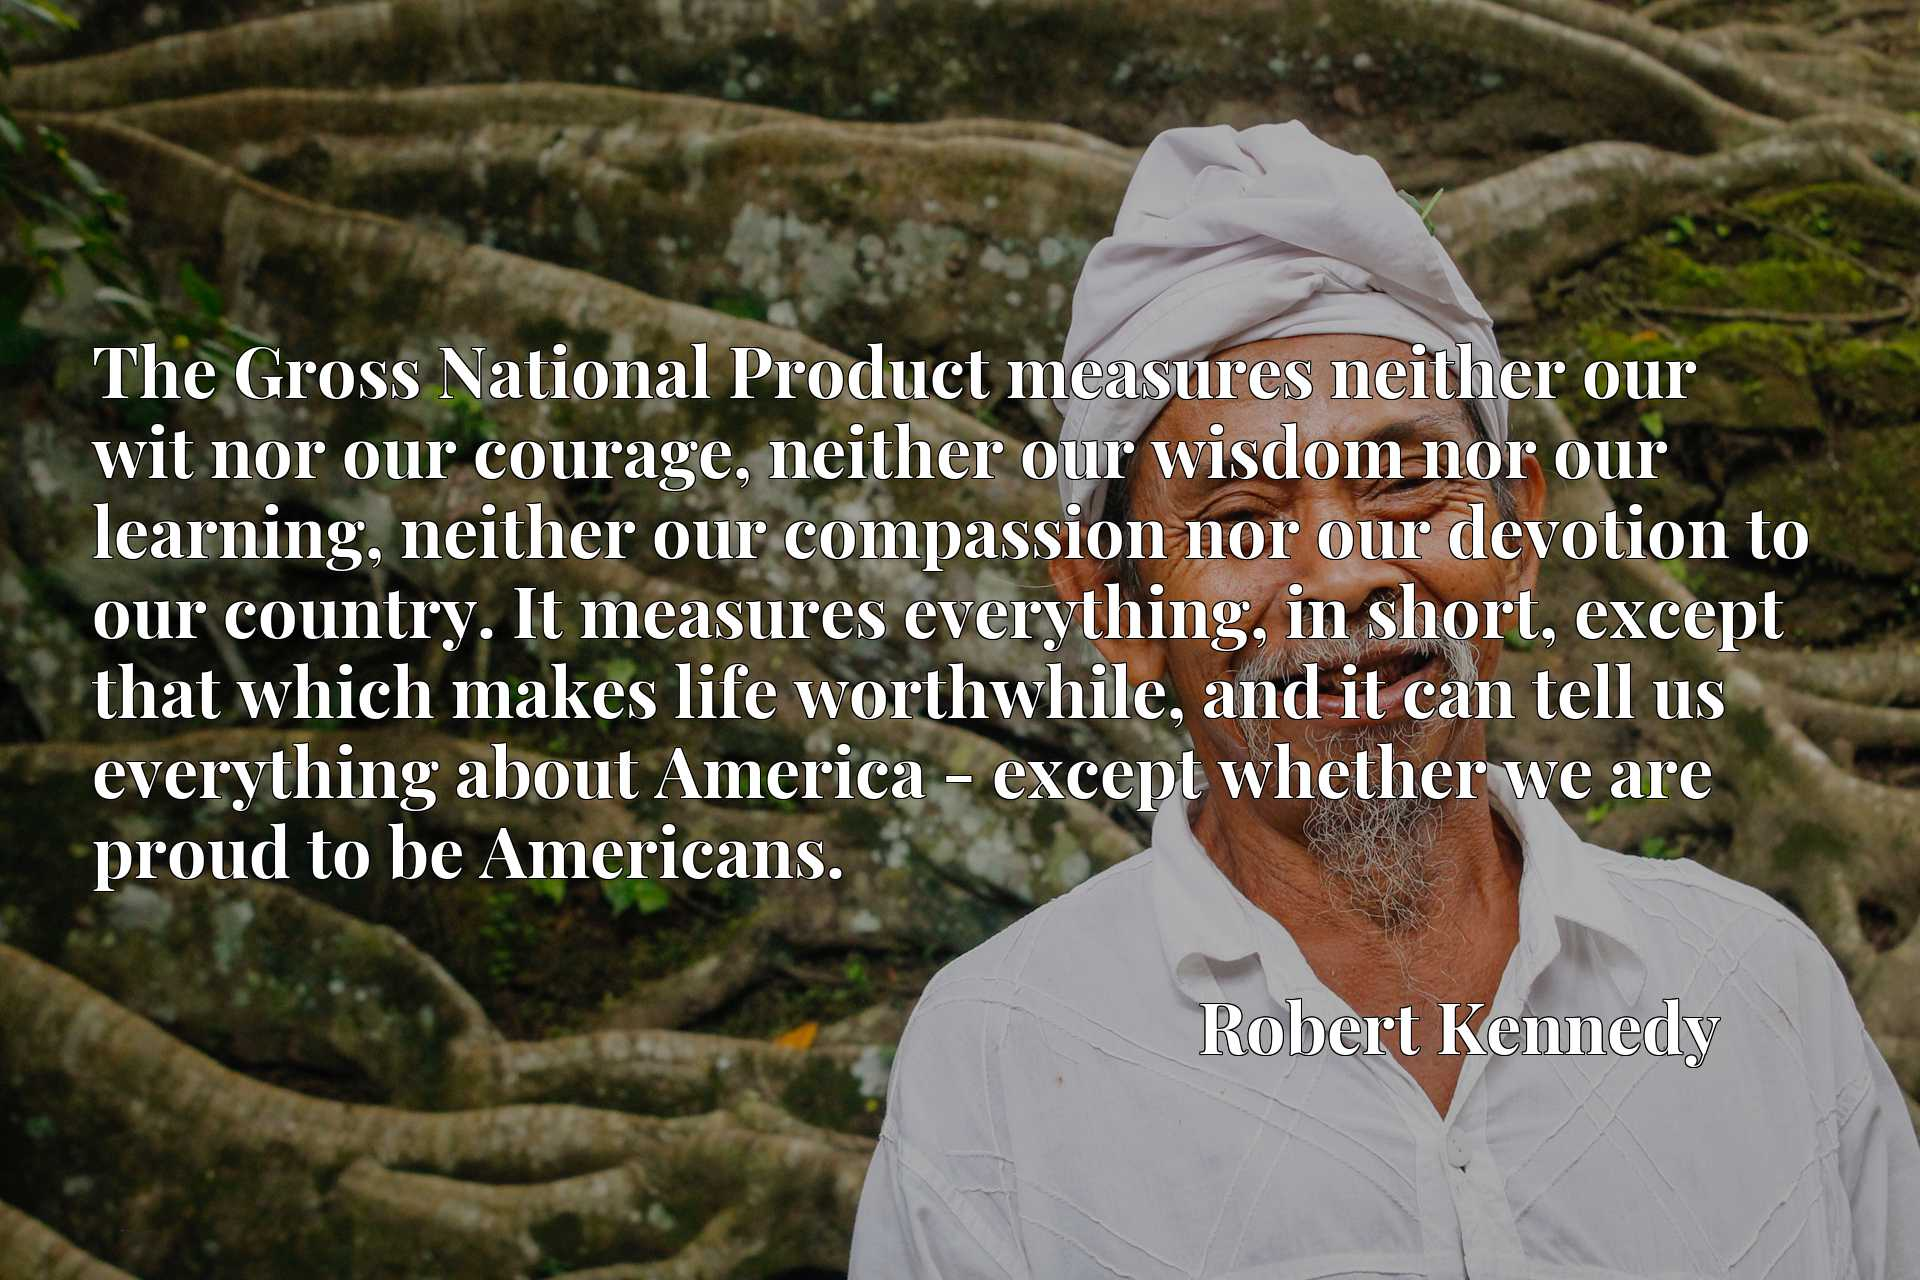 The Gross National Product measures neither our wit nor our courage, neither our wisdom nor our learning, neither our compassion nor our devotion to our country. It measures everything, in short, except that which makes life worthwhile, and it can tell us everything about America - except whether we are proud to be Americans.